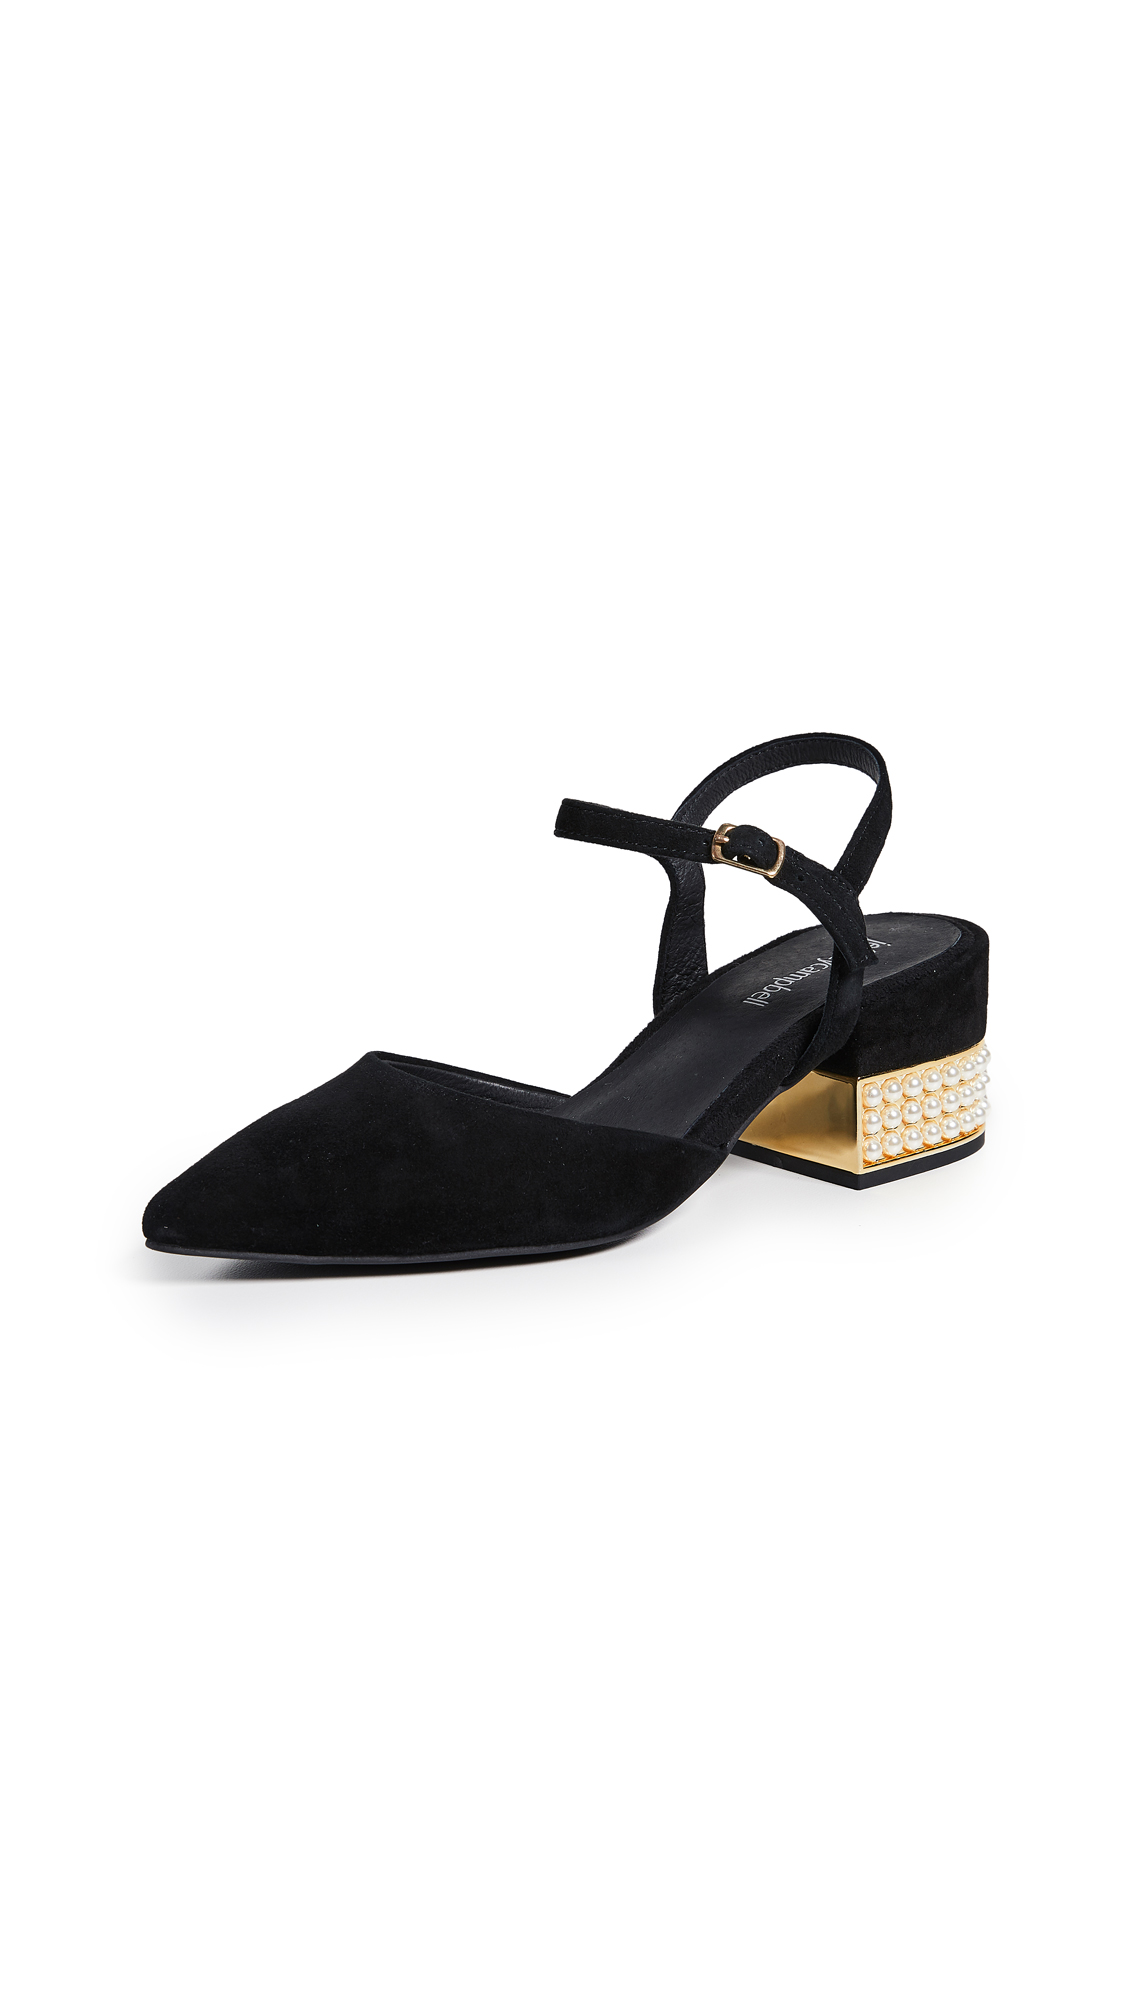 Jeffrey Campbell Tulip Ankle Strap Pumps - Black/Gold